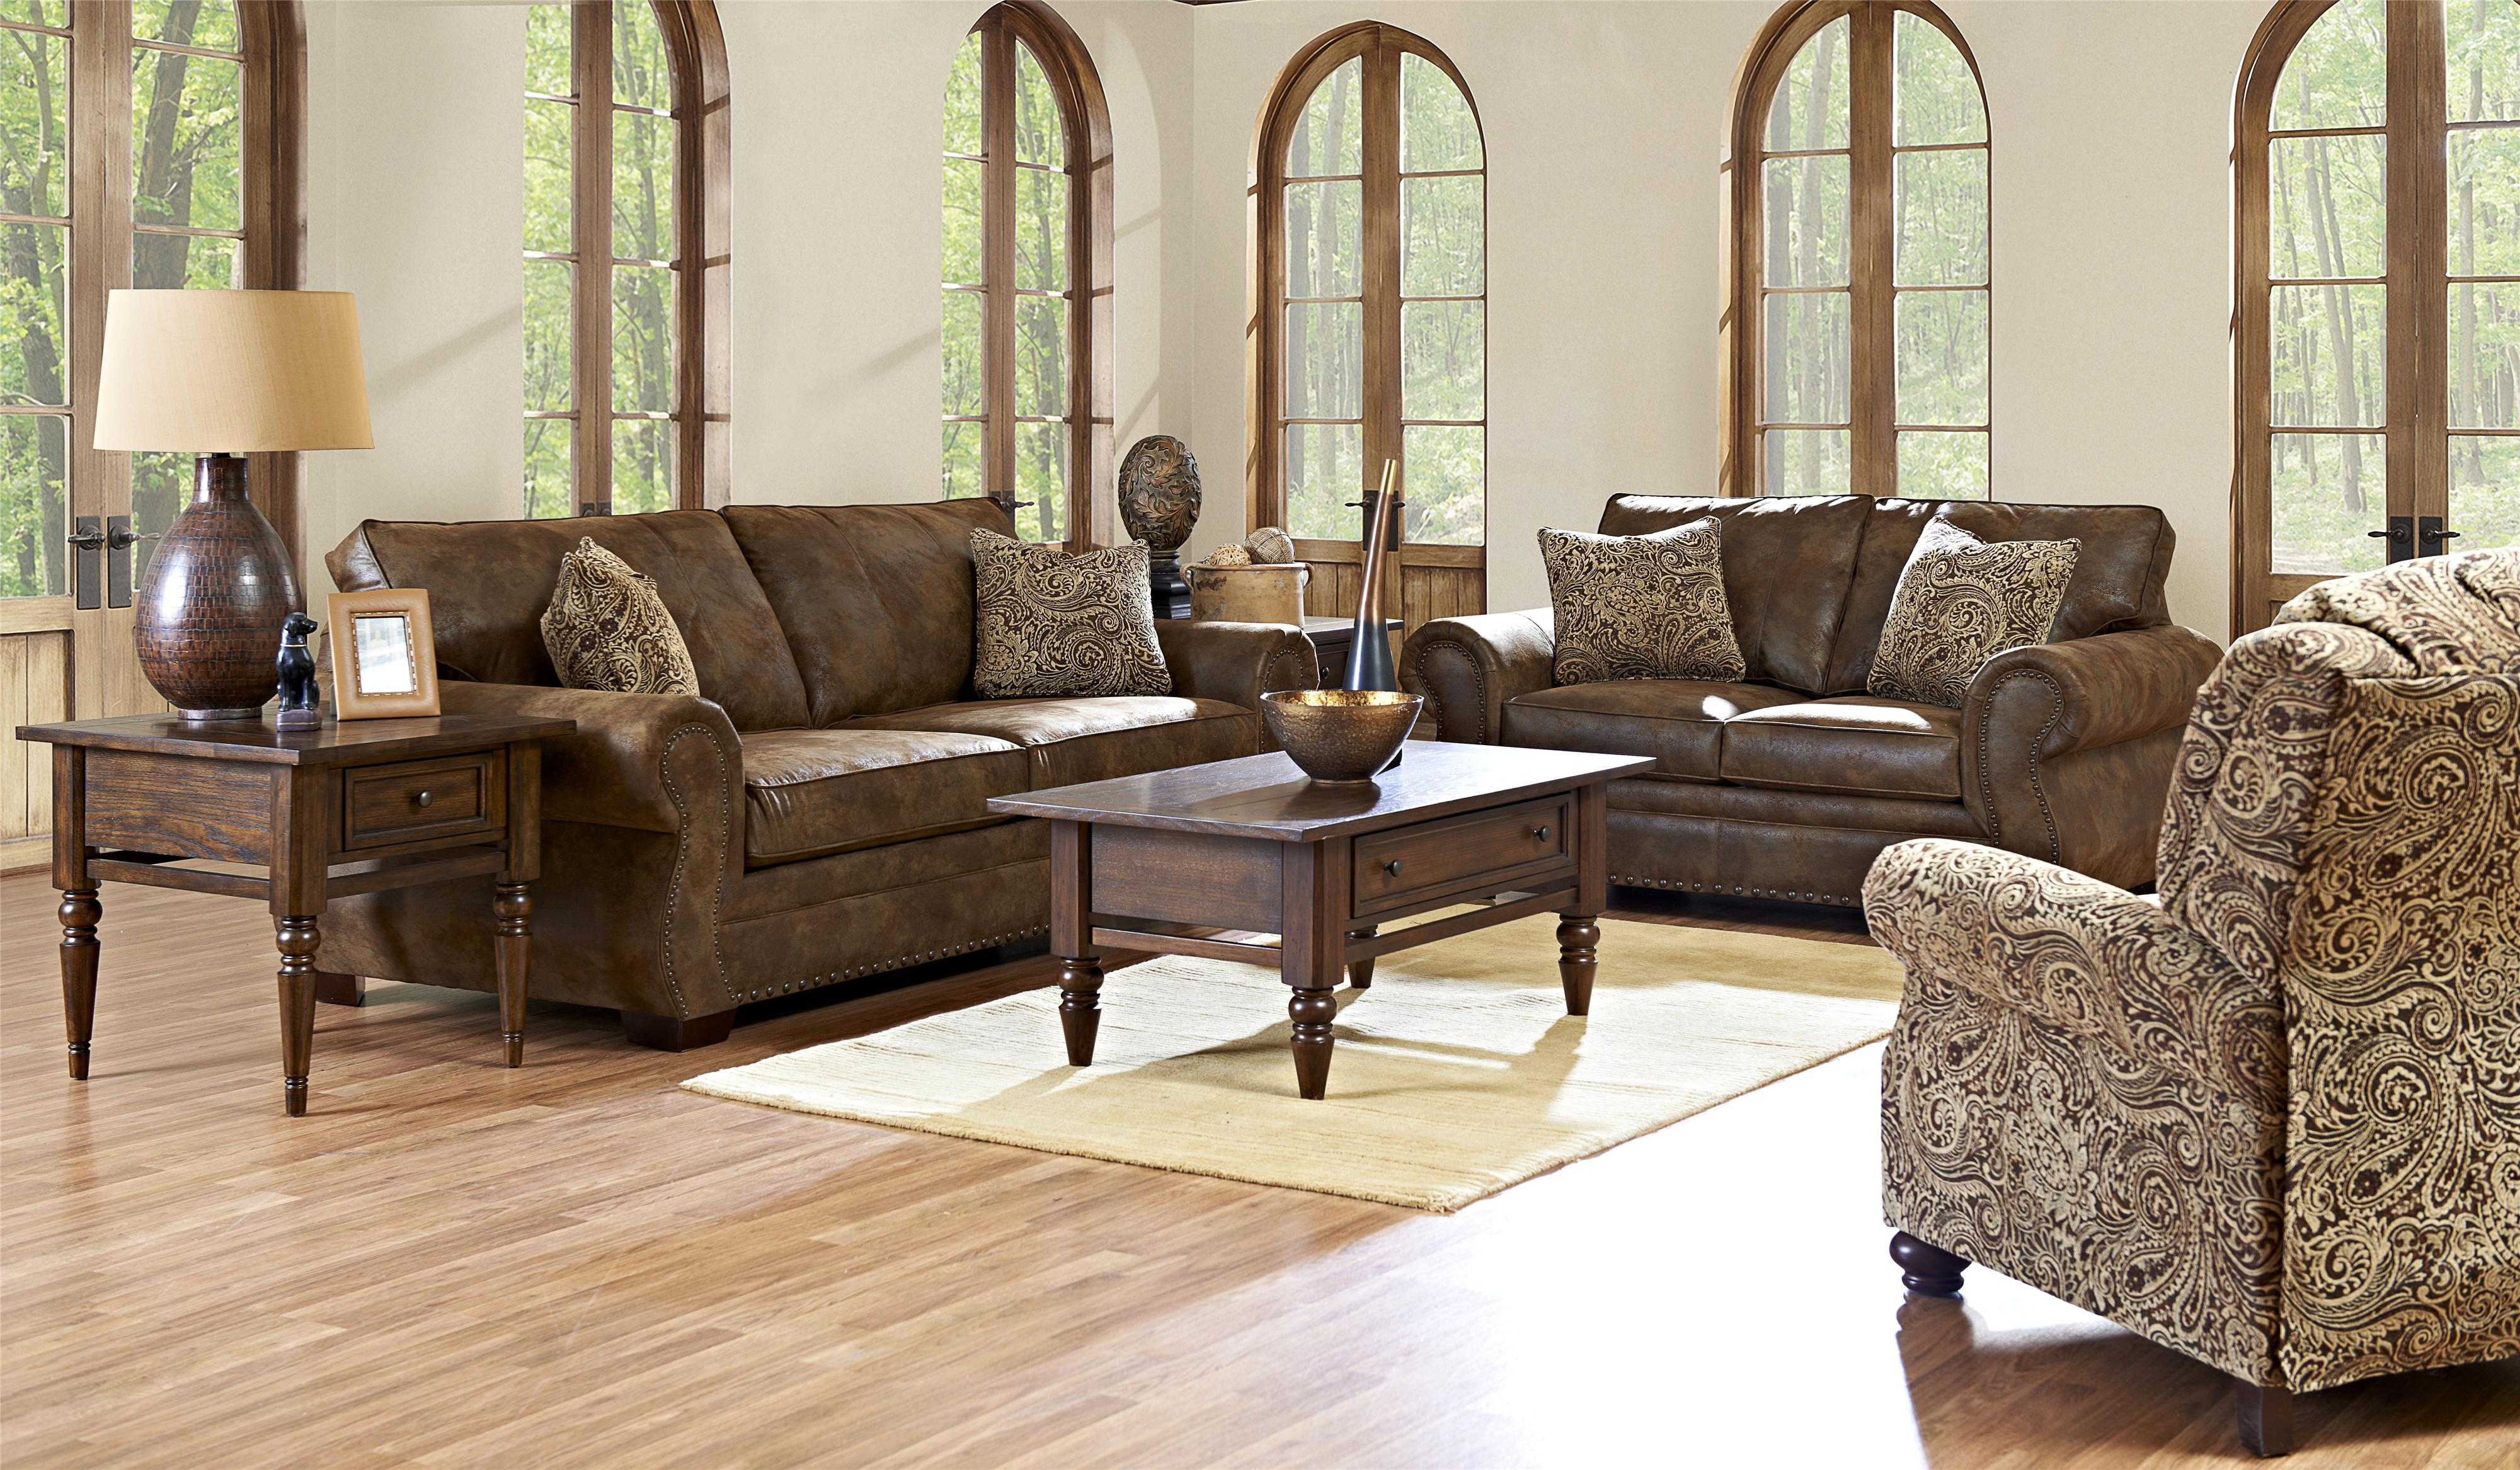 Klaussner Blackburn Stationary Living Room Group - Item Number: K14310 Living Room Group 1